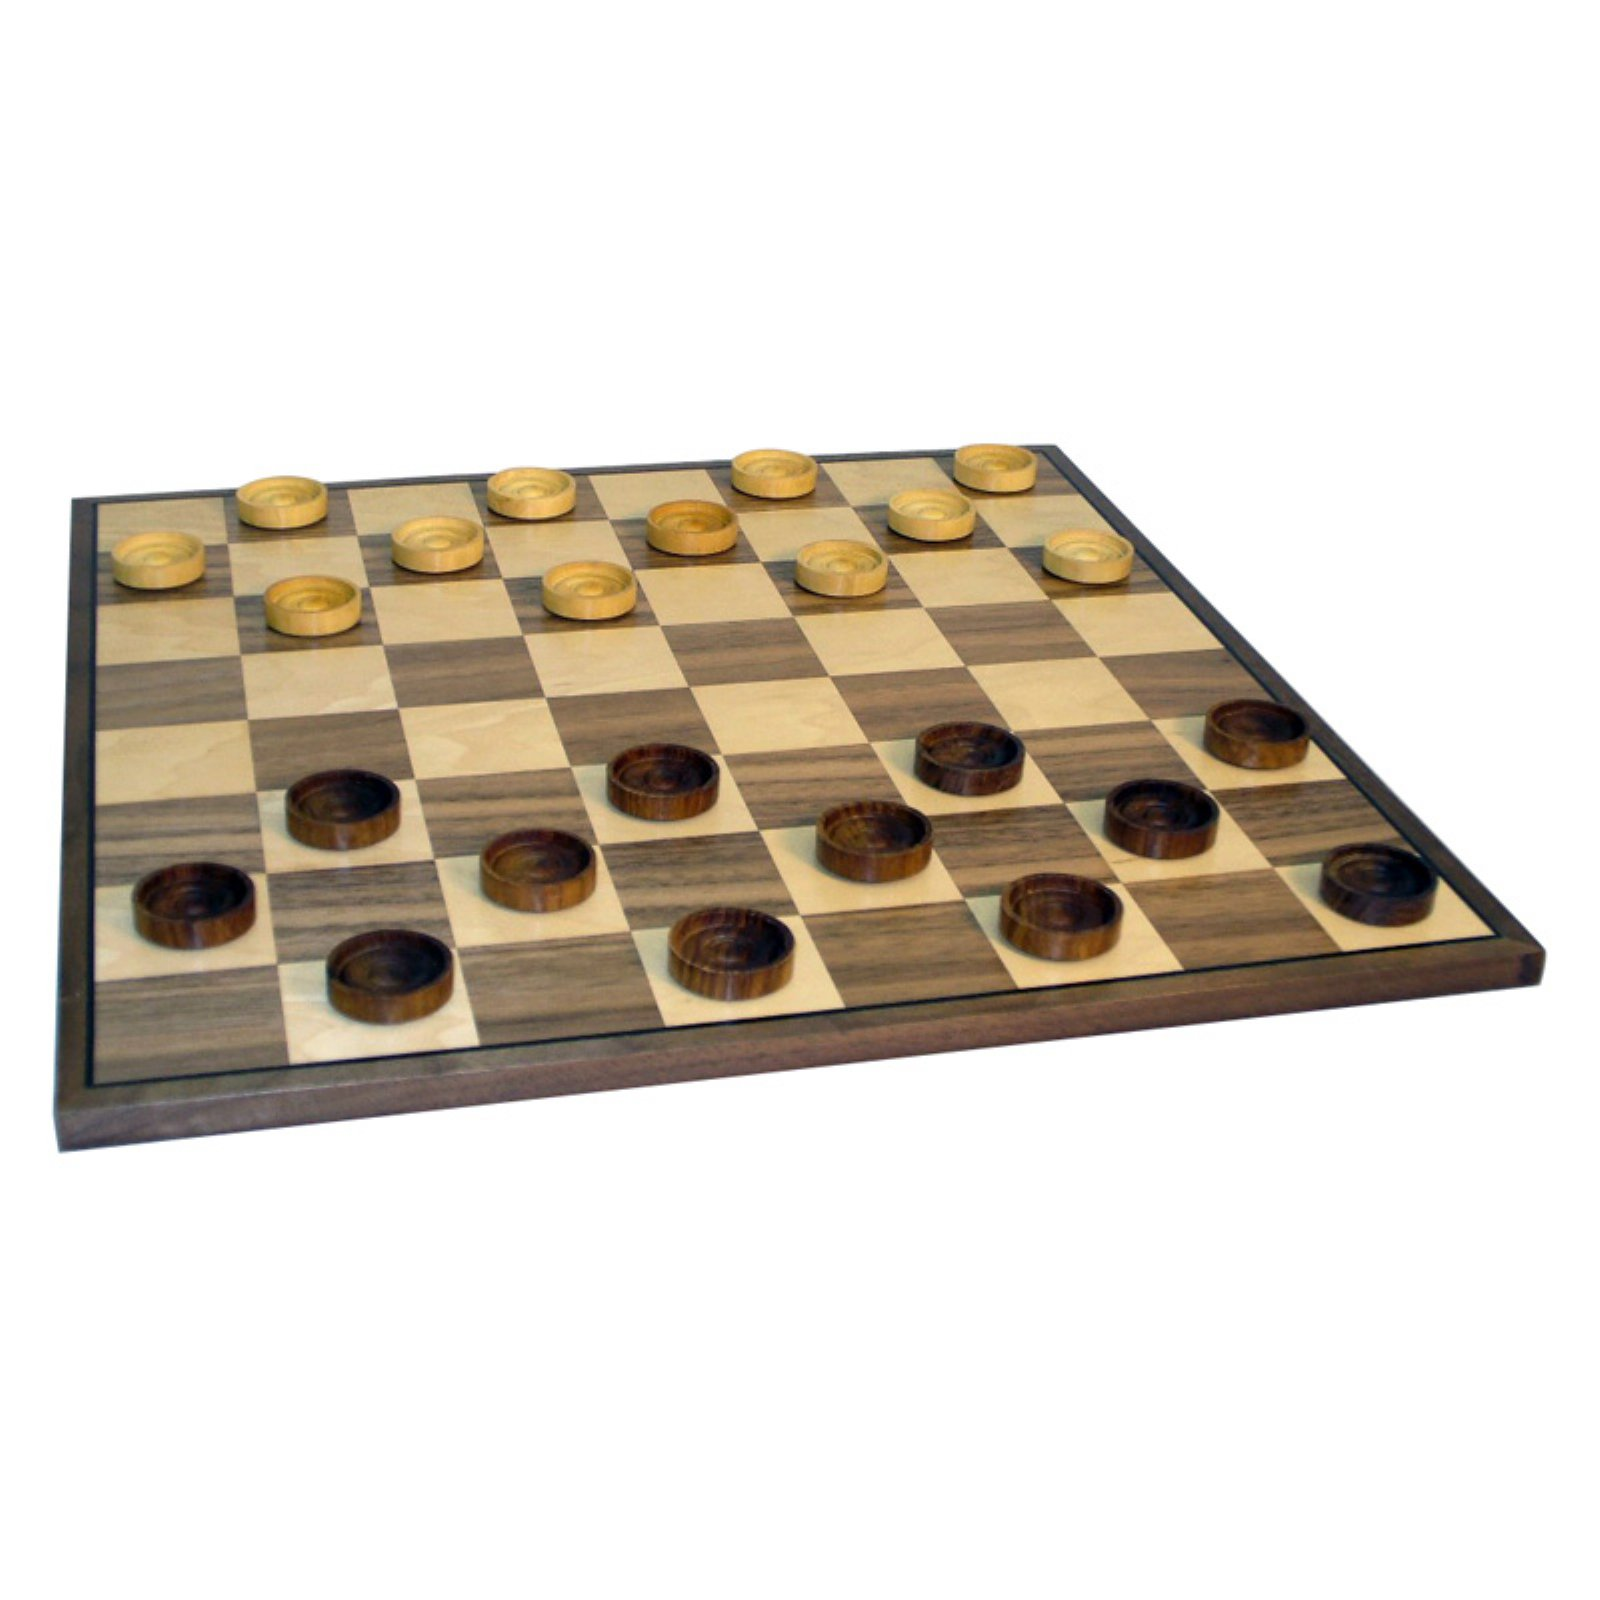 15 in. Wood Checker Set